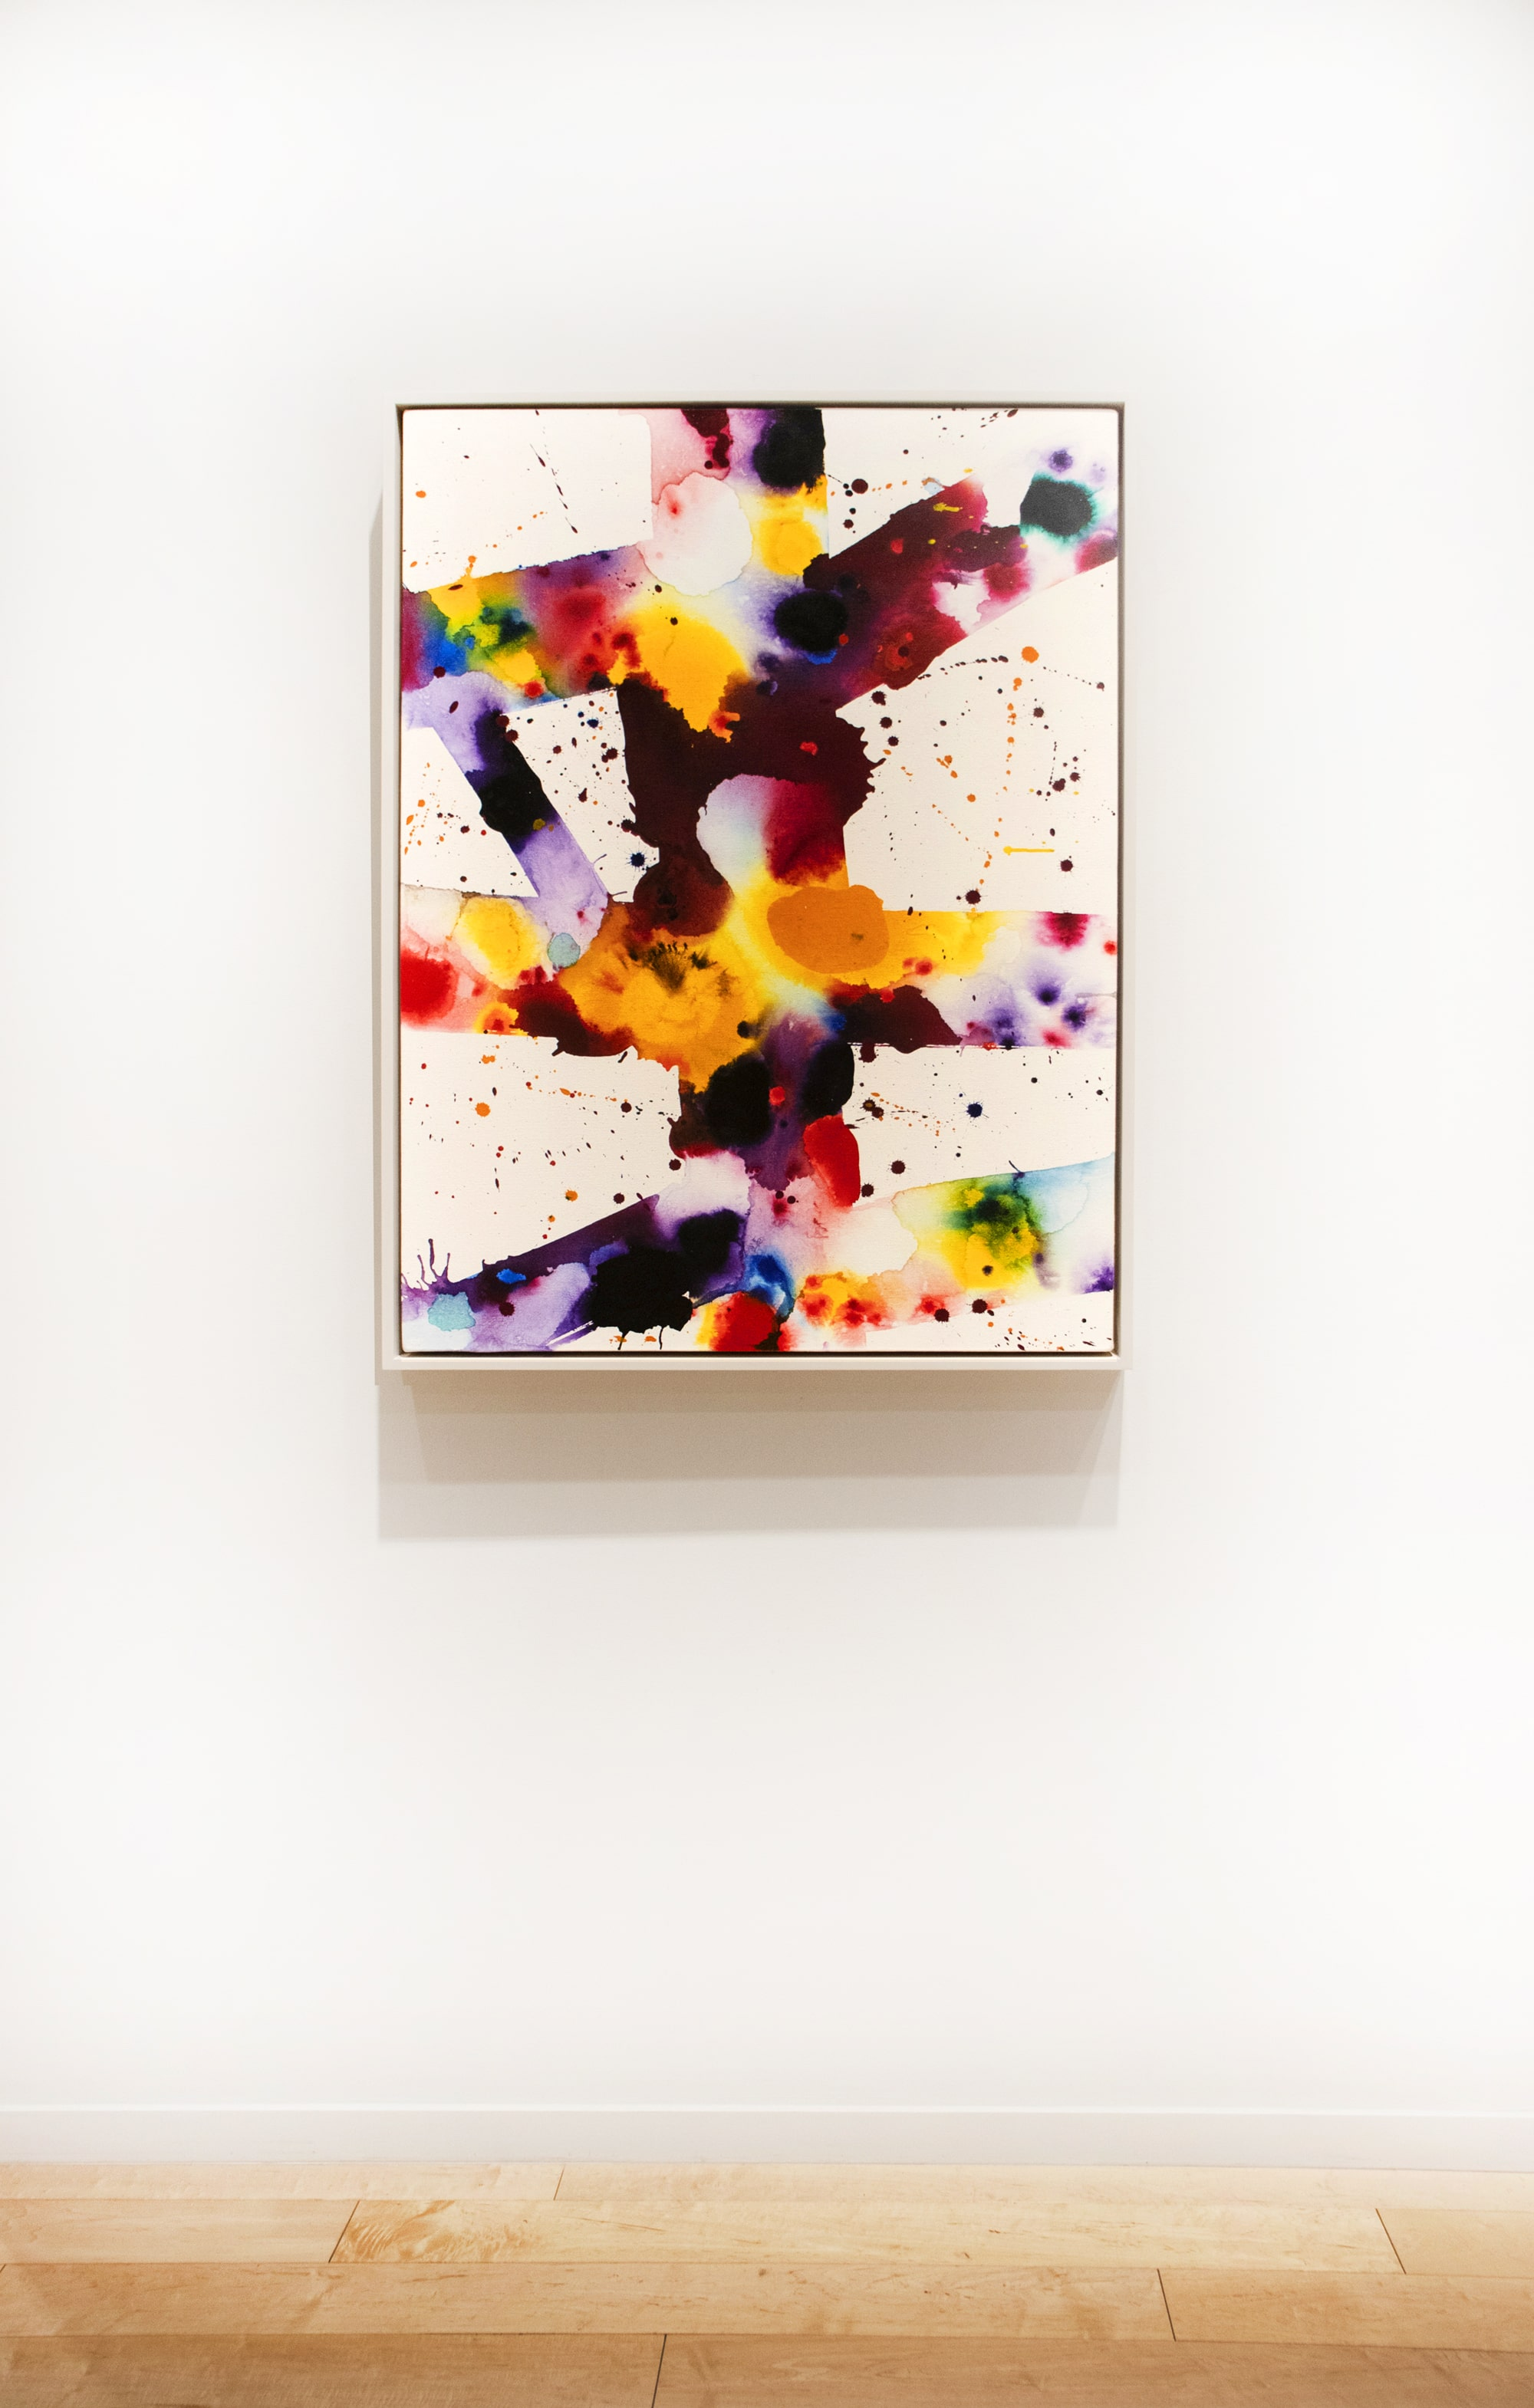 A work by Sam Francis from 1973. Acrylic and oil on canvas.